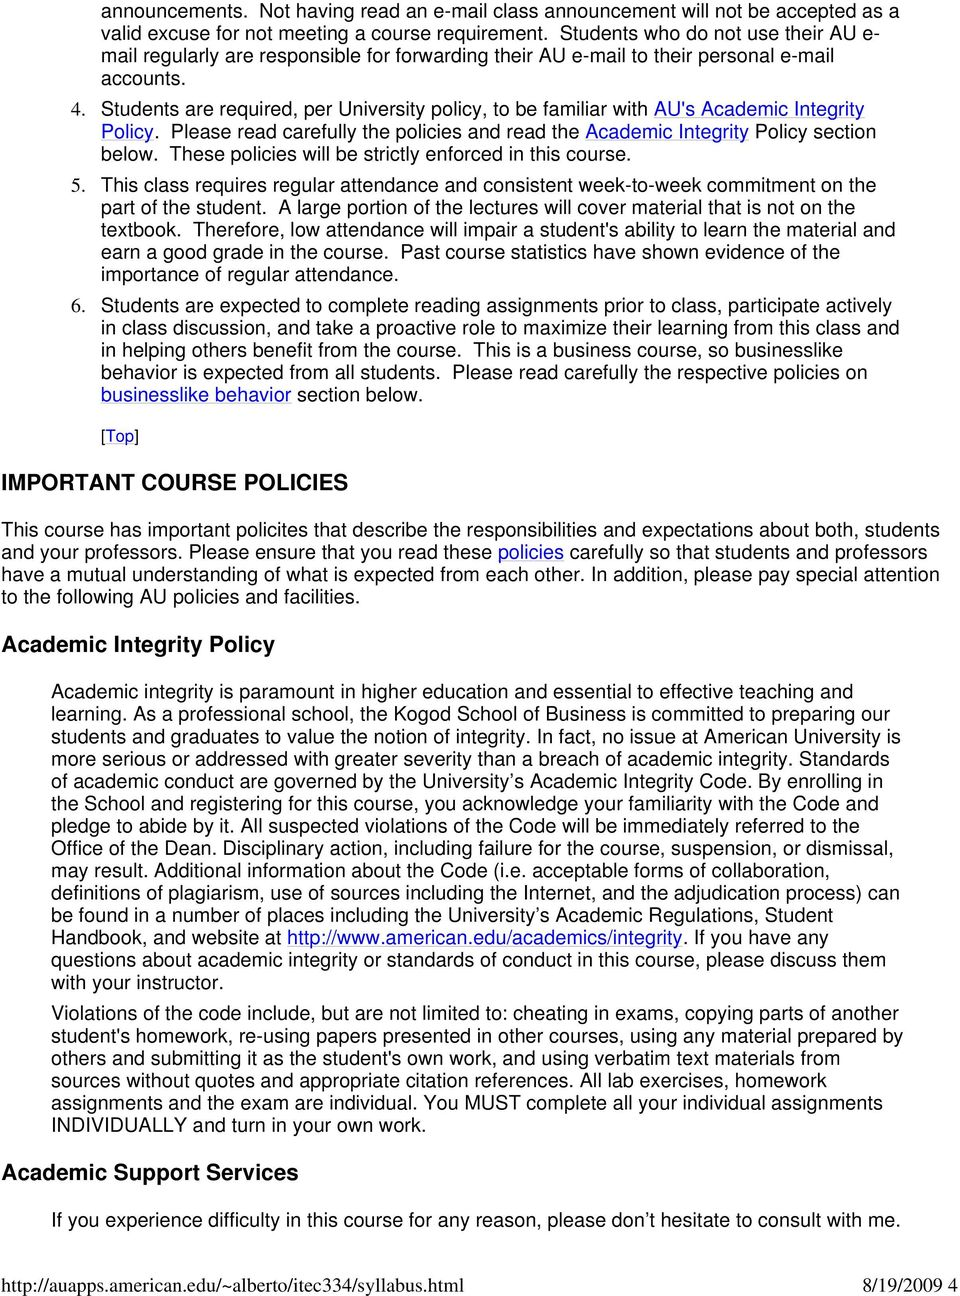 Students are required, per University policy, to be familiar with AU's Academic Integrity Policy. Please read carefully the policies and read the Academic Integrity Policy section below.